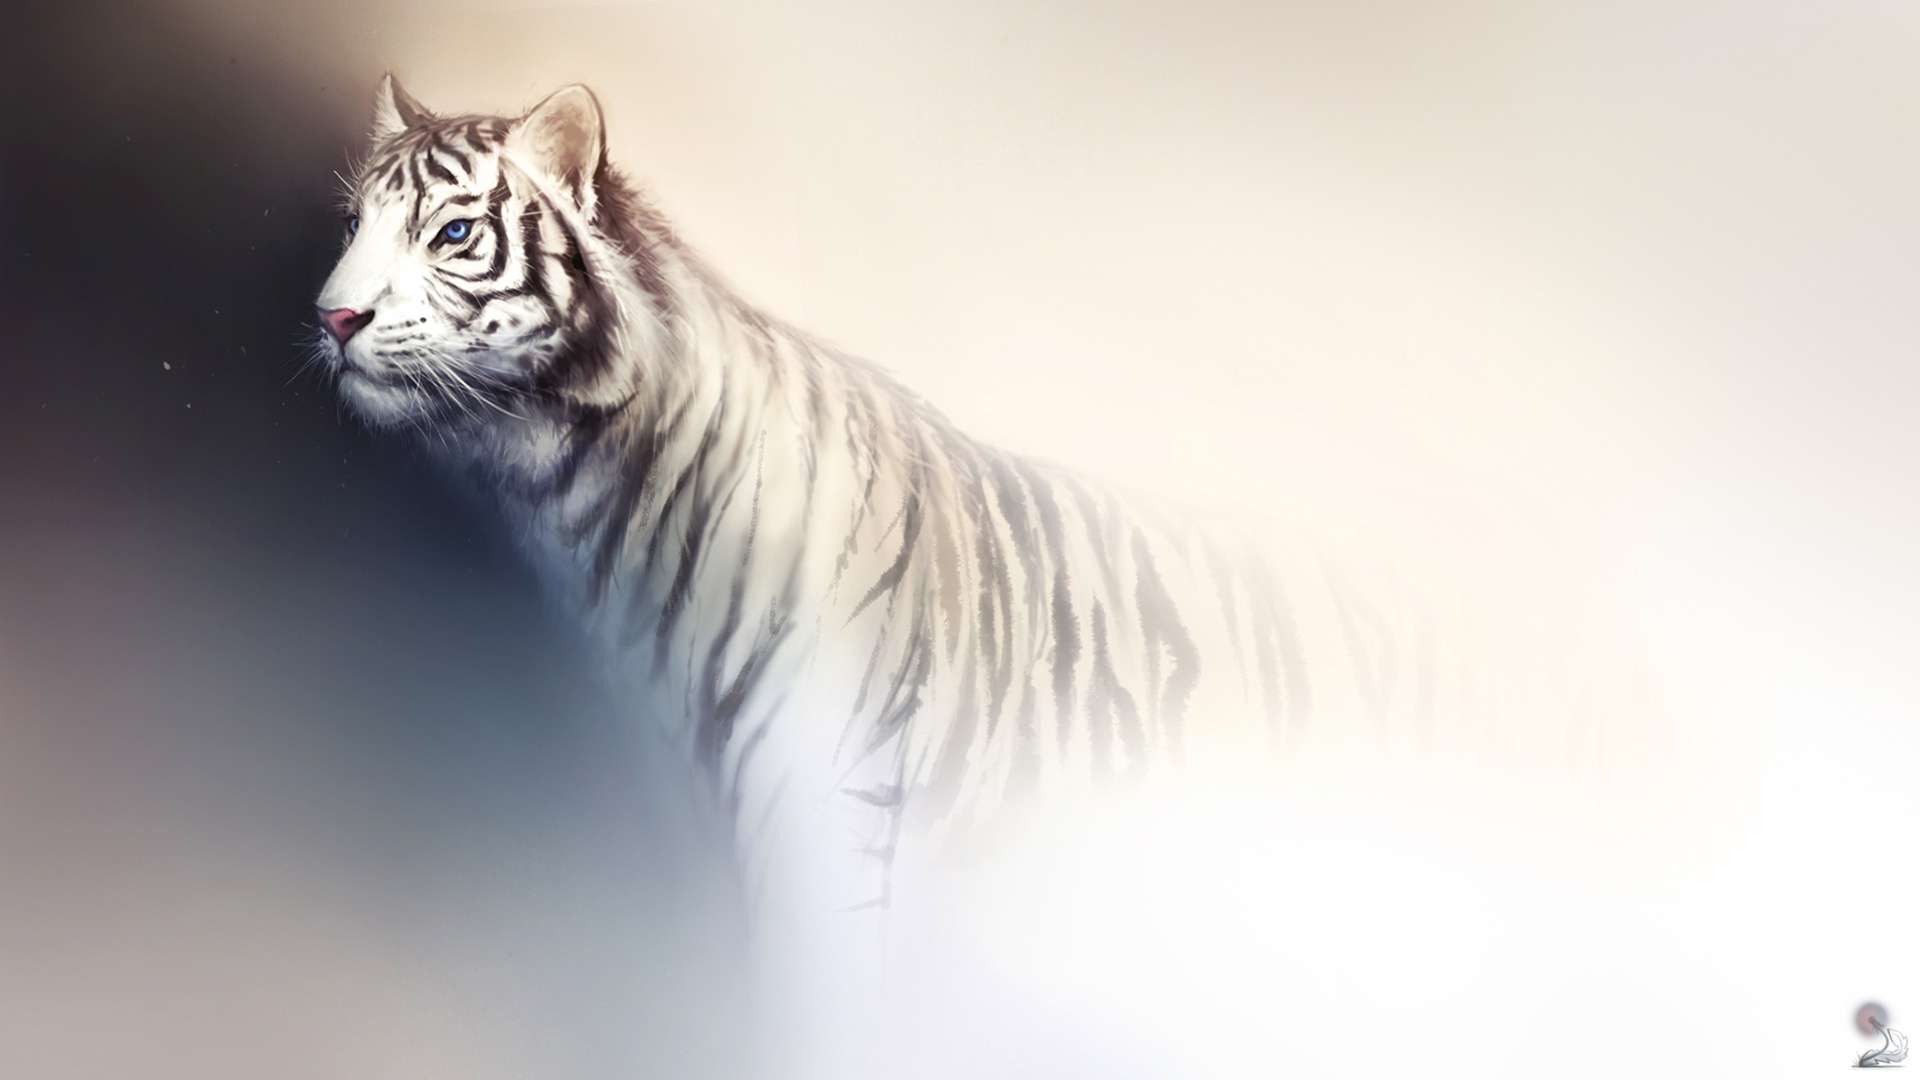 White Tiger Hd Wallpaper Background Image 1920x1080 Id 300666